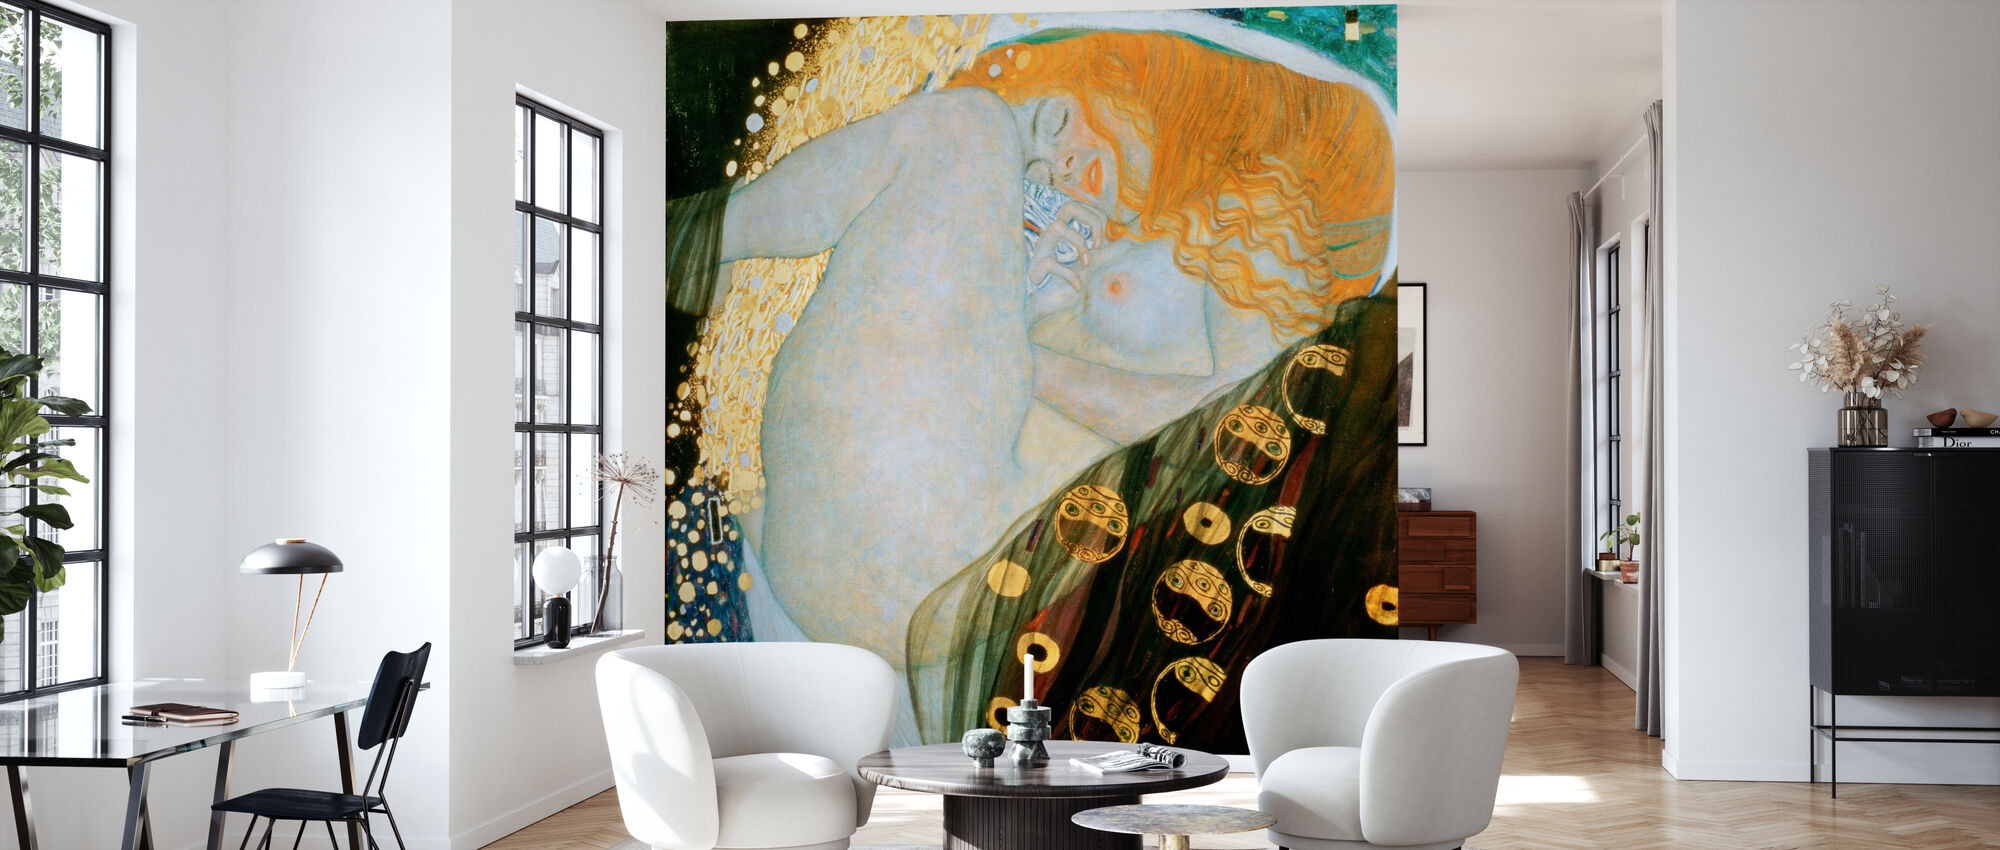 Danae, Gustav Klimt - Wallpaper - Living Room